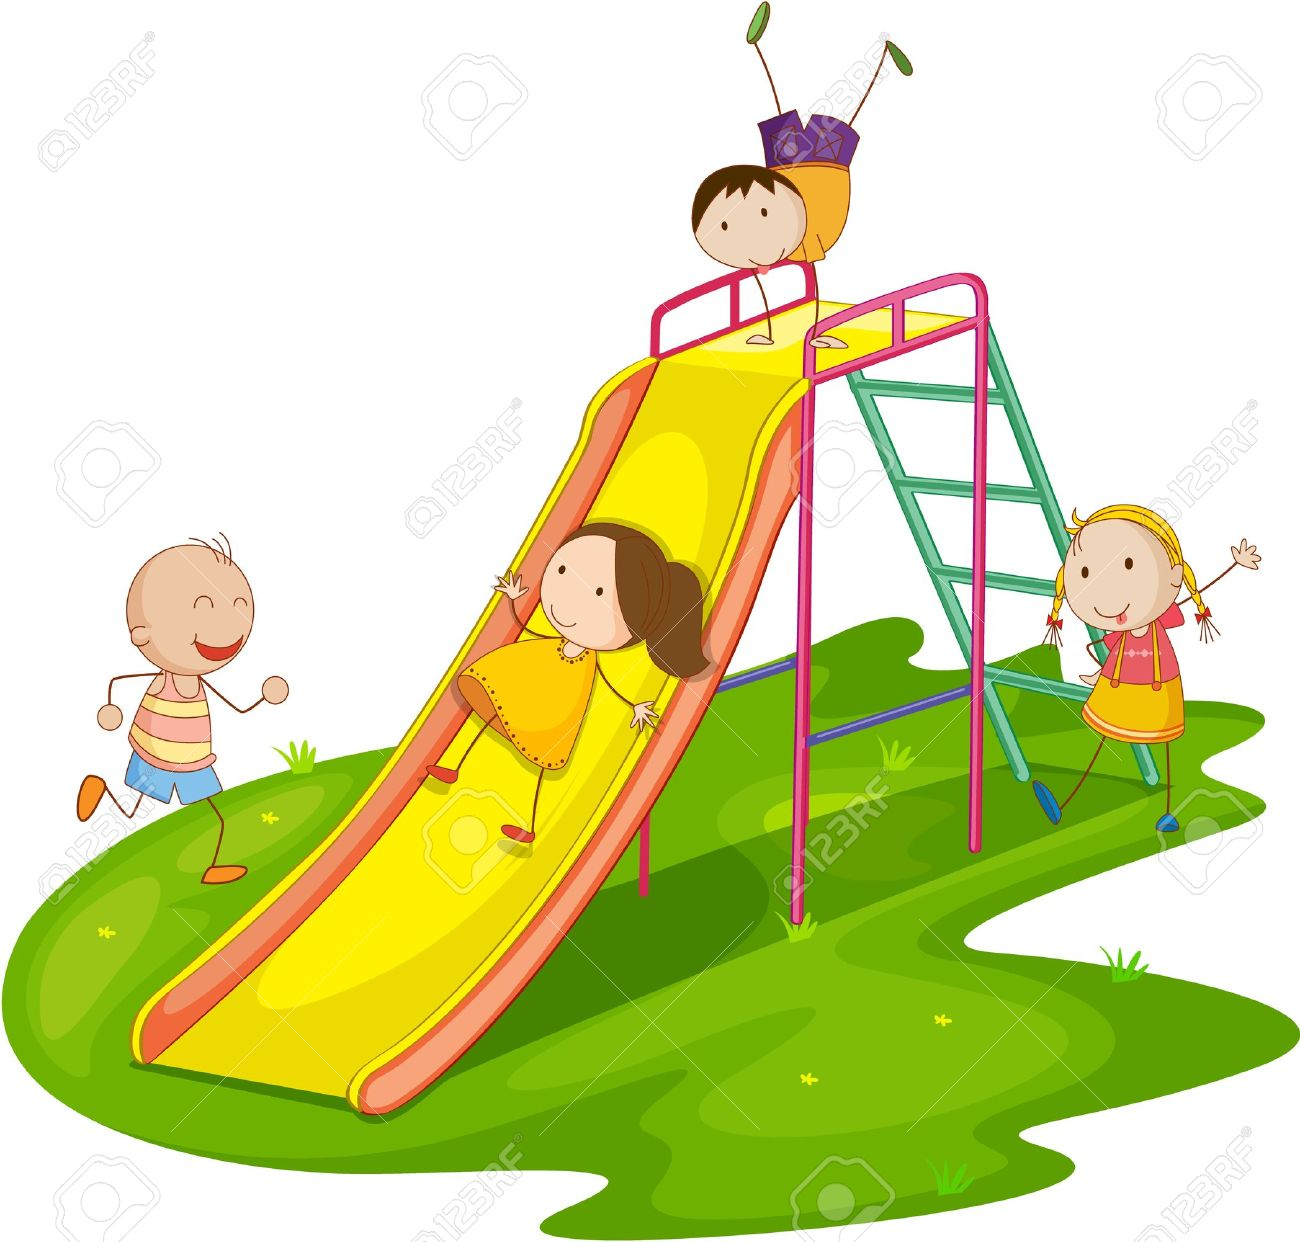 Children playing free download. Outside clipart childrens park